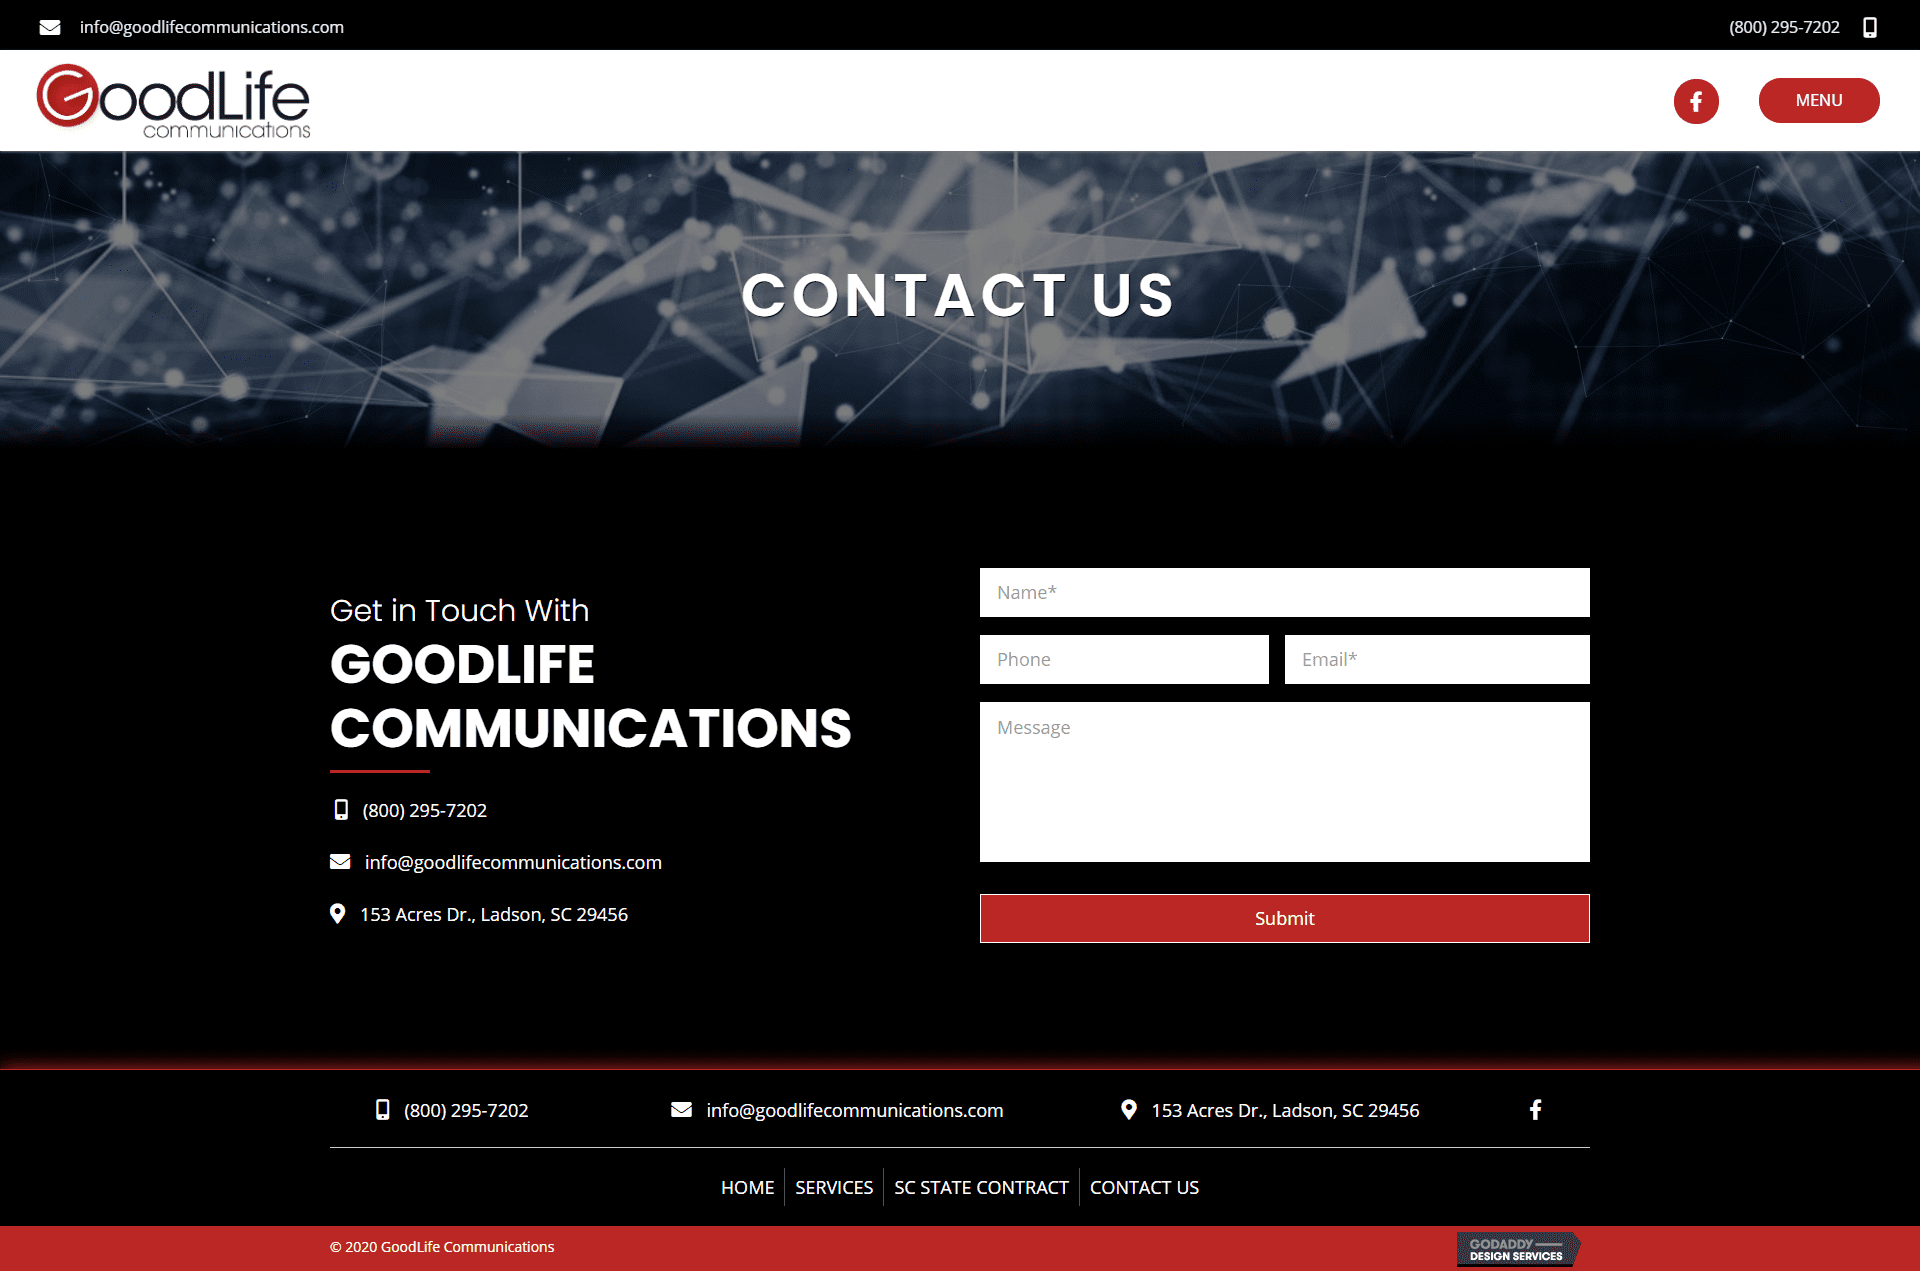 GoodLife Communications Contact Page